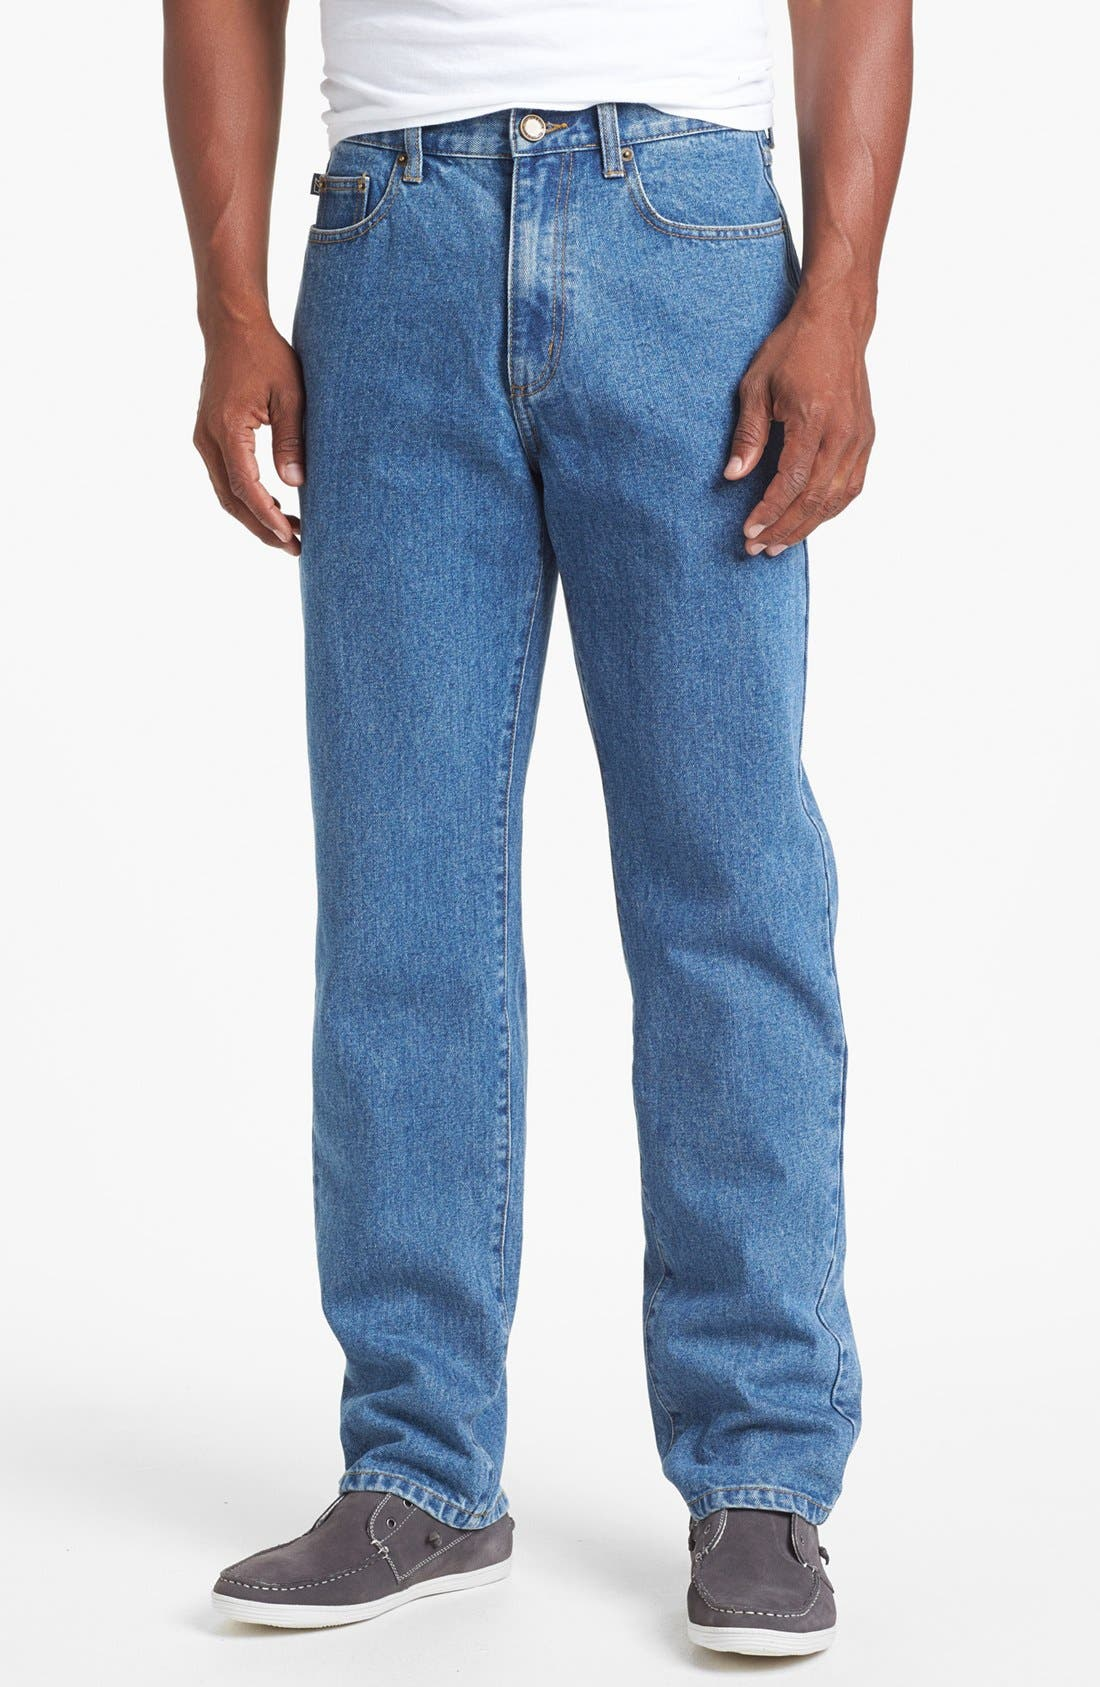 Main Image - Cutter & Buck Five-Pocket Relaxed Fit Jeans (Big & Tall)